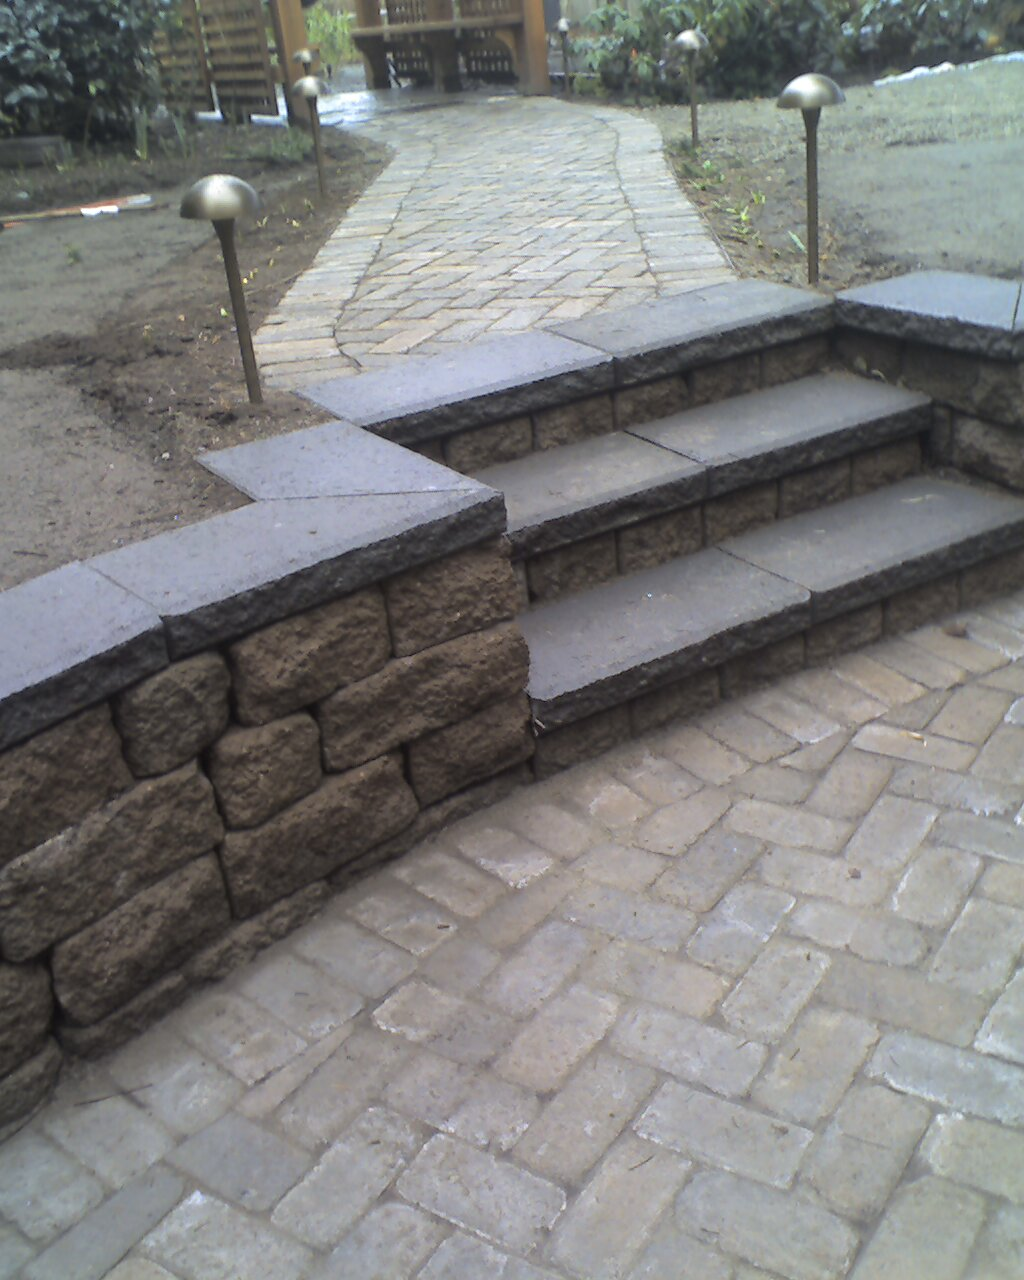 Seattle Pavers, Seattle Retaining Walls, Patio Pavers Seattle. Patio Swing Sets On Sale. Patio Furniture Outlet Maryland. Patio Furniture Woodmead. New Replacement Patio Swing Chair Set Canopy Cover Top. Outdoor Furniture Freehold Nj. Four Seasons Patio Furniture Delaware. Patio Furniture Umbrella Repair Parts. Outdoor Furniture Rental Tulsa